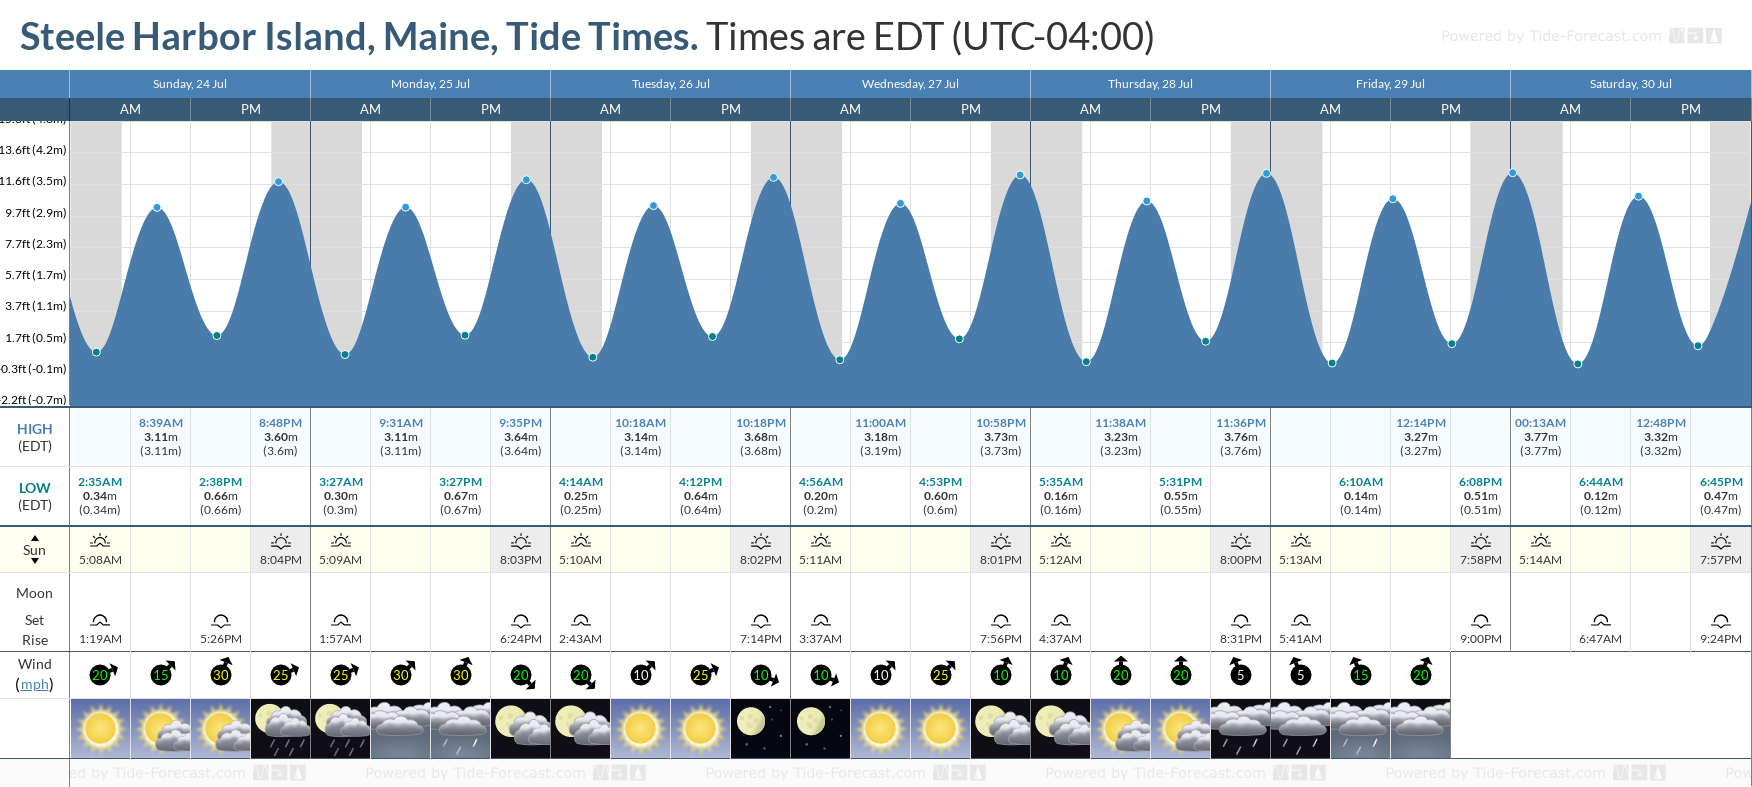 Steele Harbor Island, Maine Tide Chart including high and low tide tide times for the next 7 days